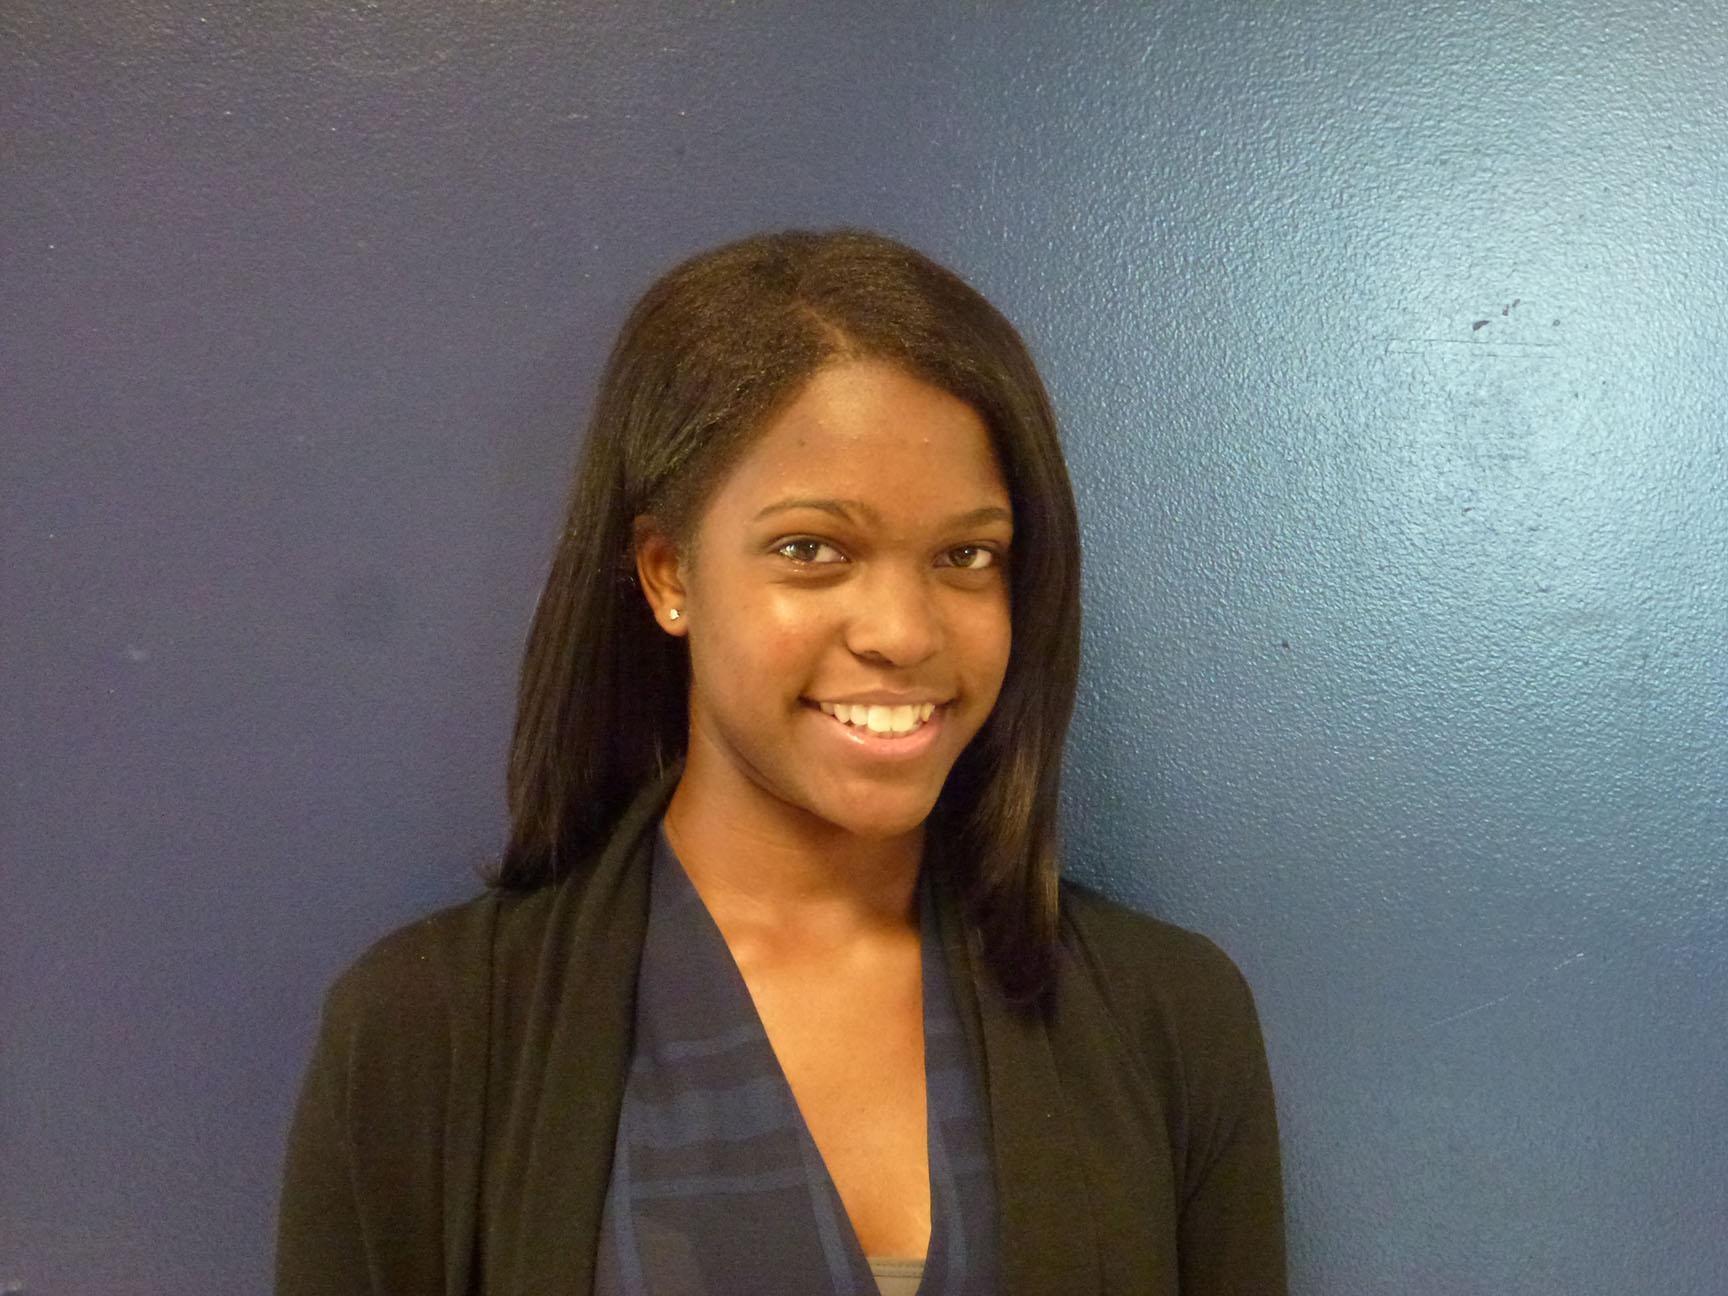 Ariel Walker is a columnist for The Southfield Jay, and she plans to attend Spelman College in the fall.